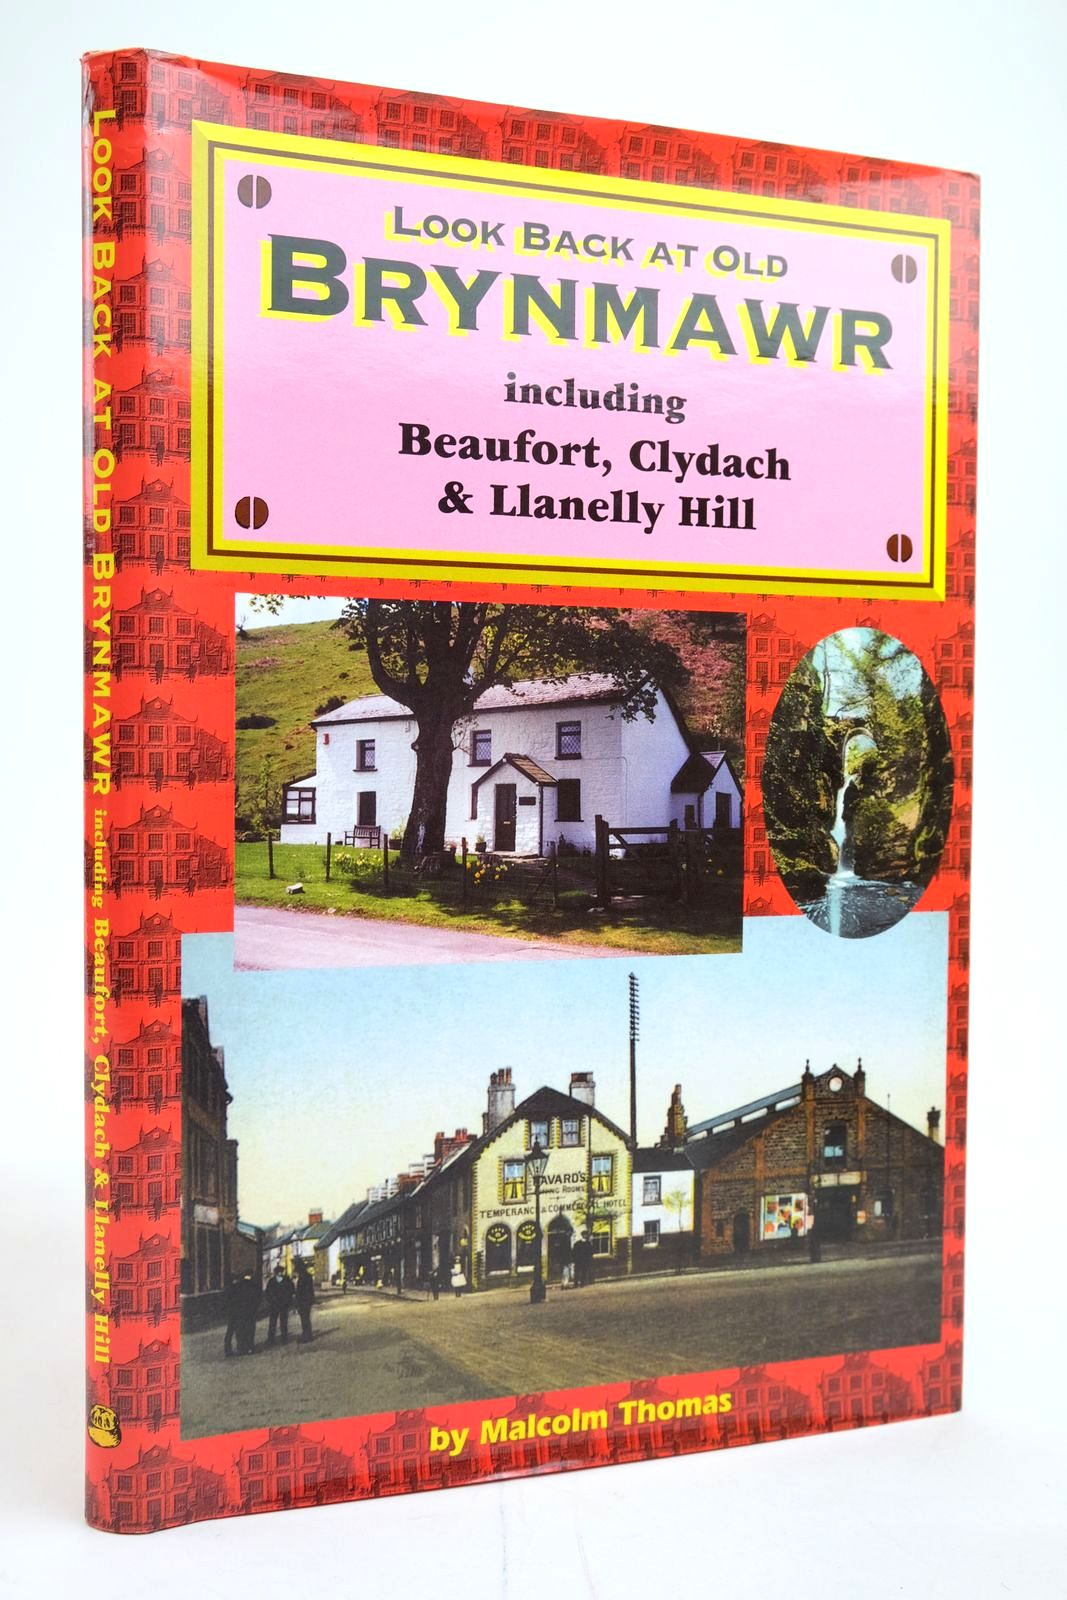 Photo of LOOK BACK AT OLD BRYNMAWR INCLUDING BEAUFORT, CLYDACH & LLANELLY HILL- Stock Number: 2135216